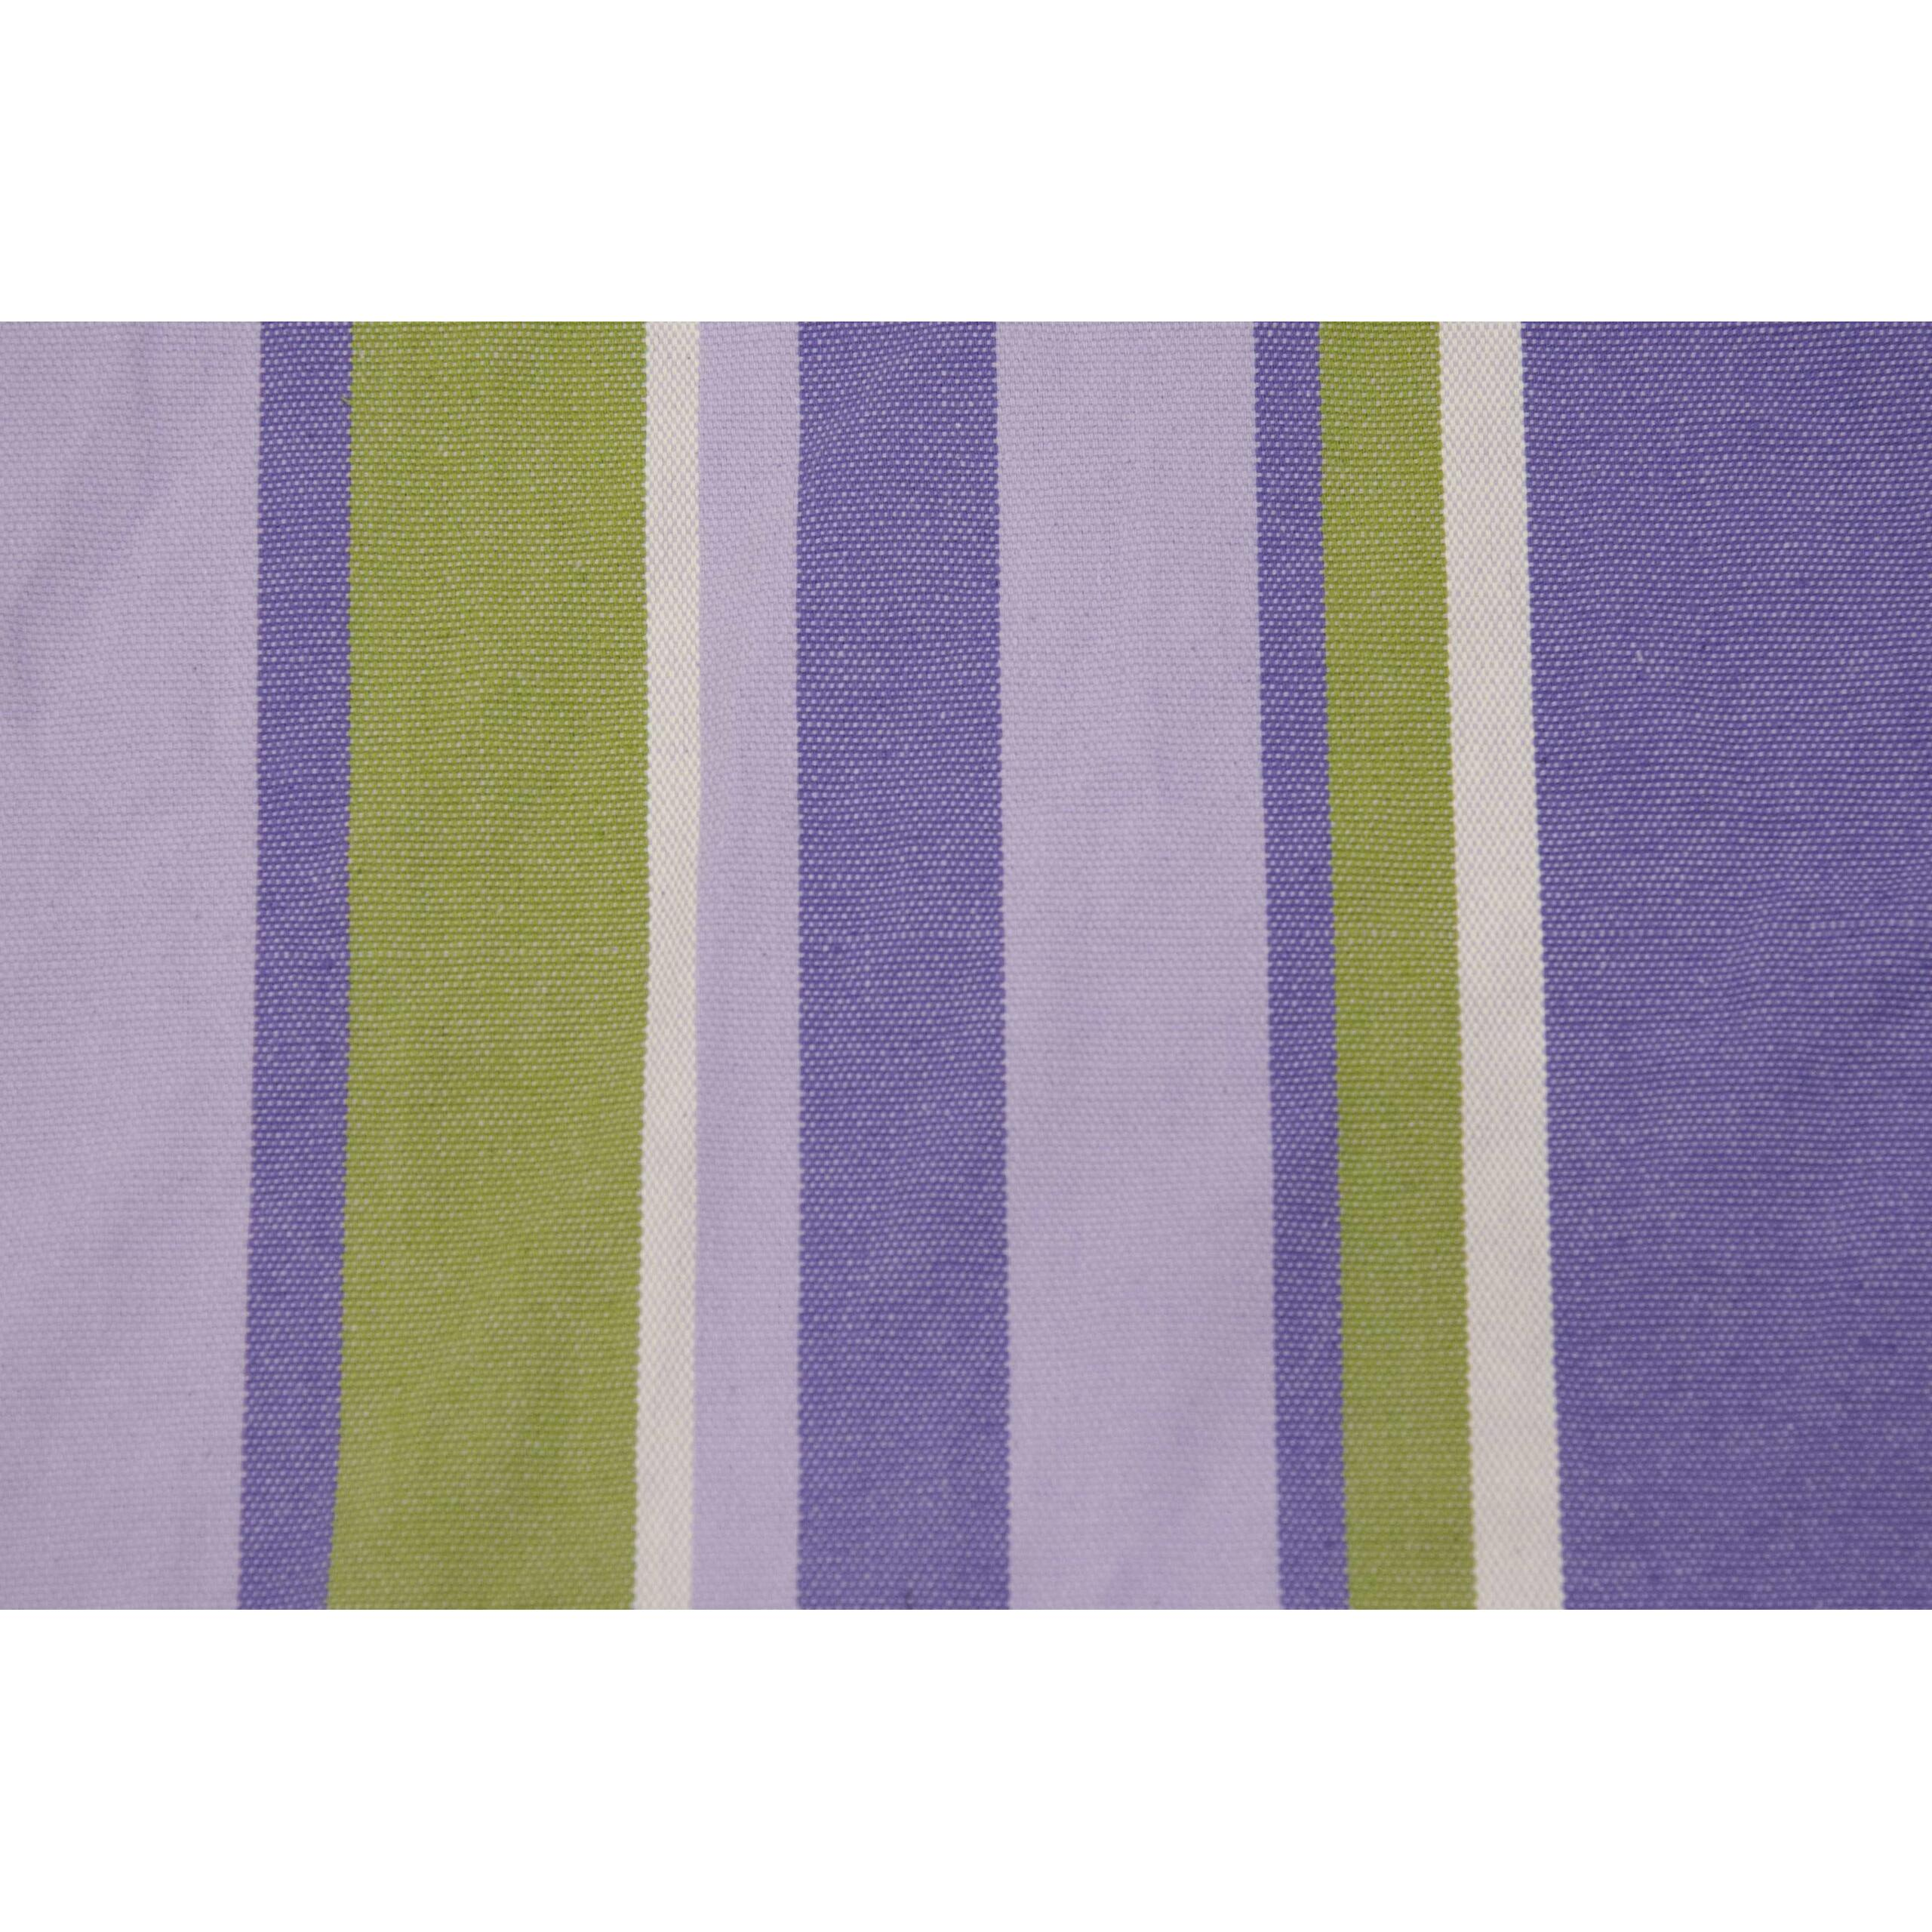 Double Brazilian Cotton Hammock in Tranquility – UHSDO9-27_Swatch